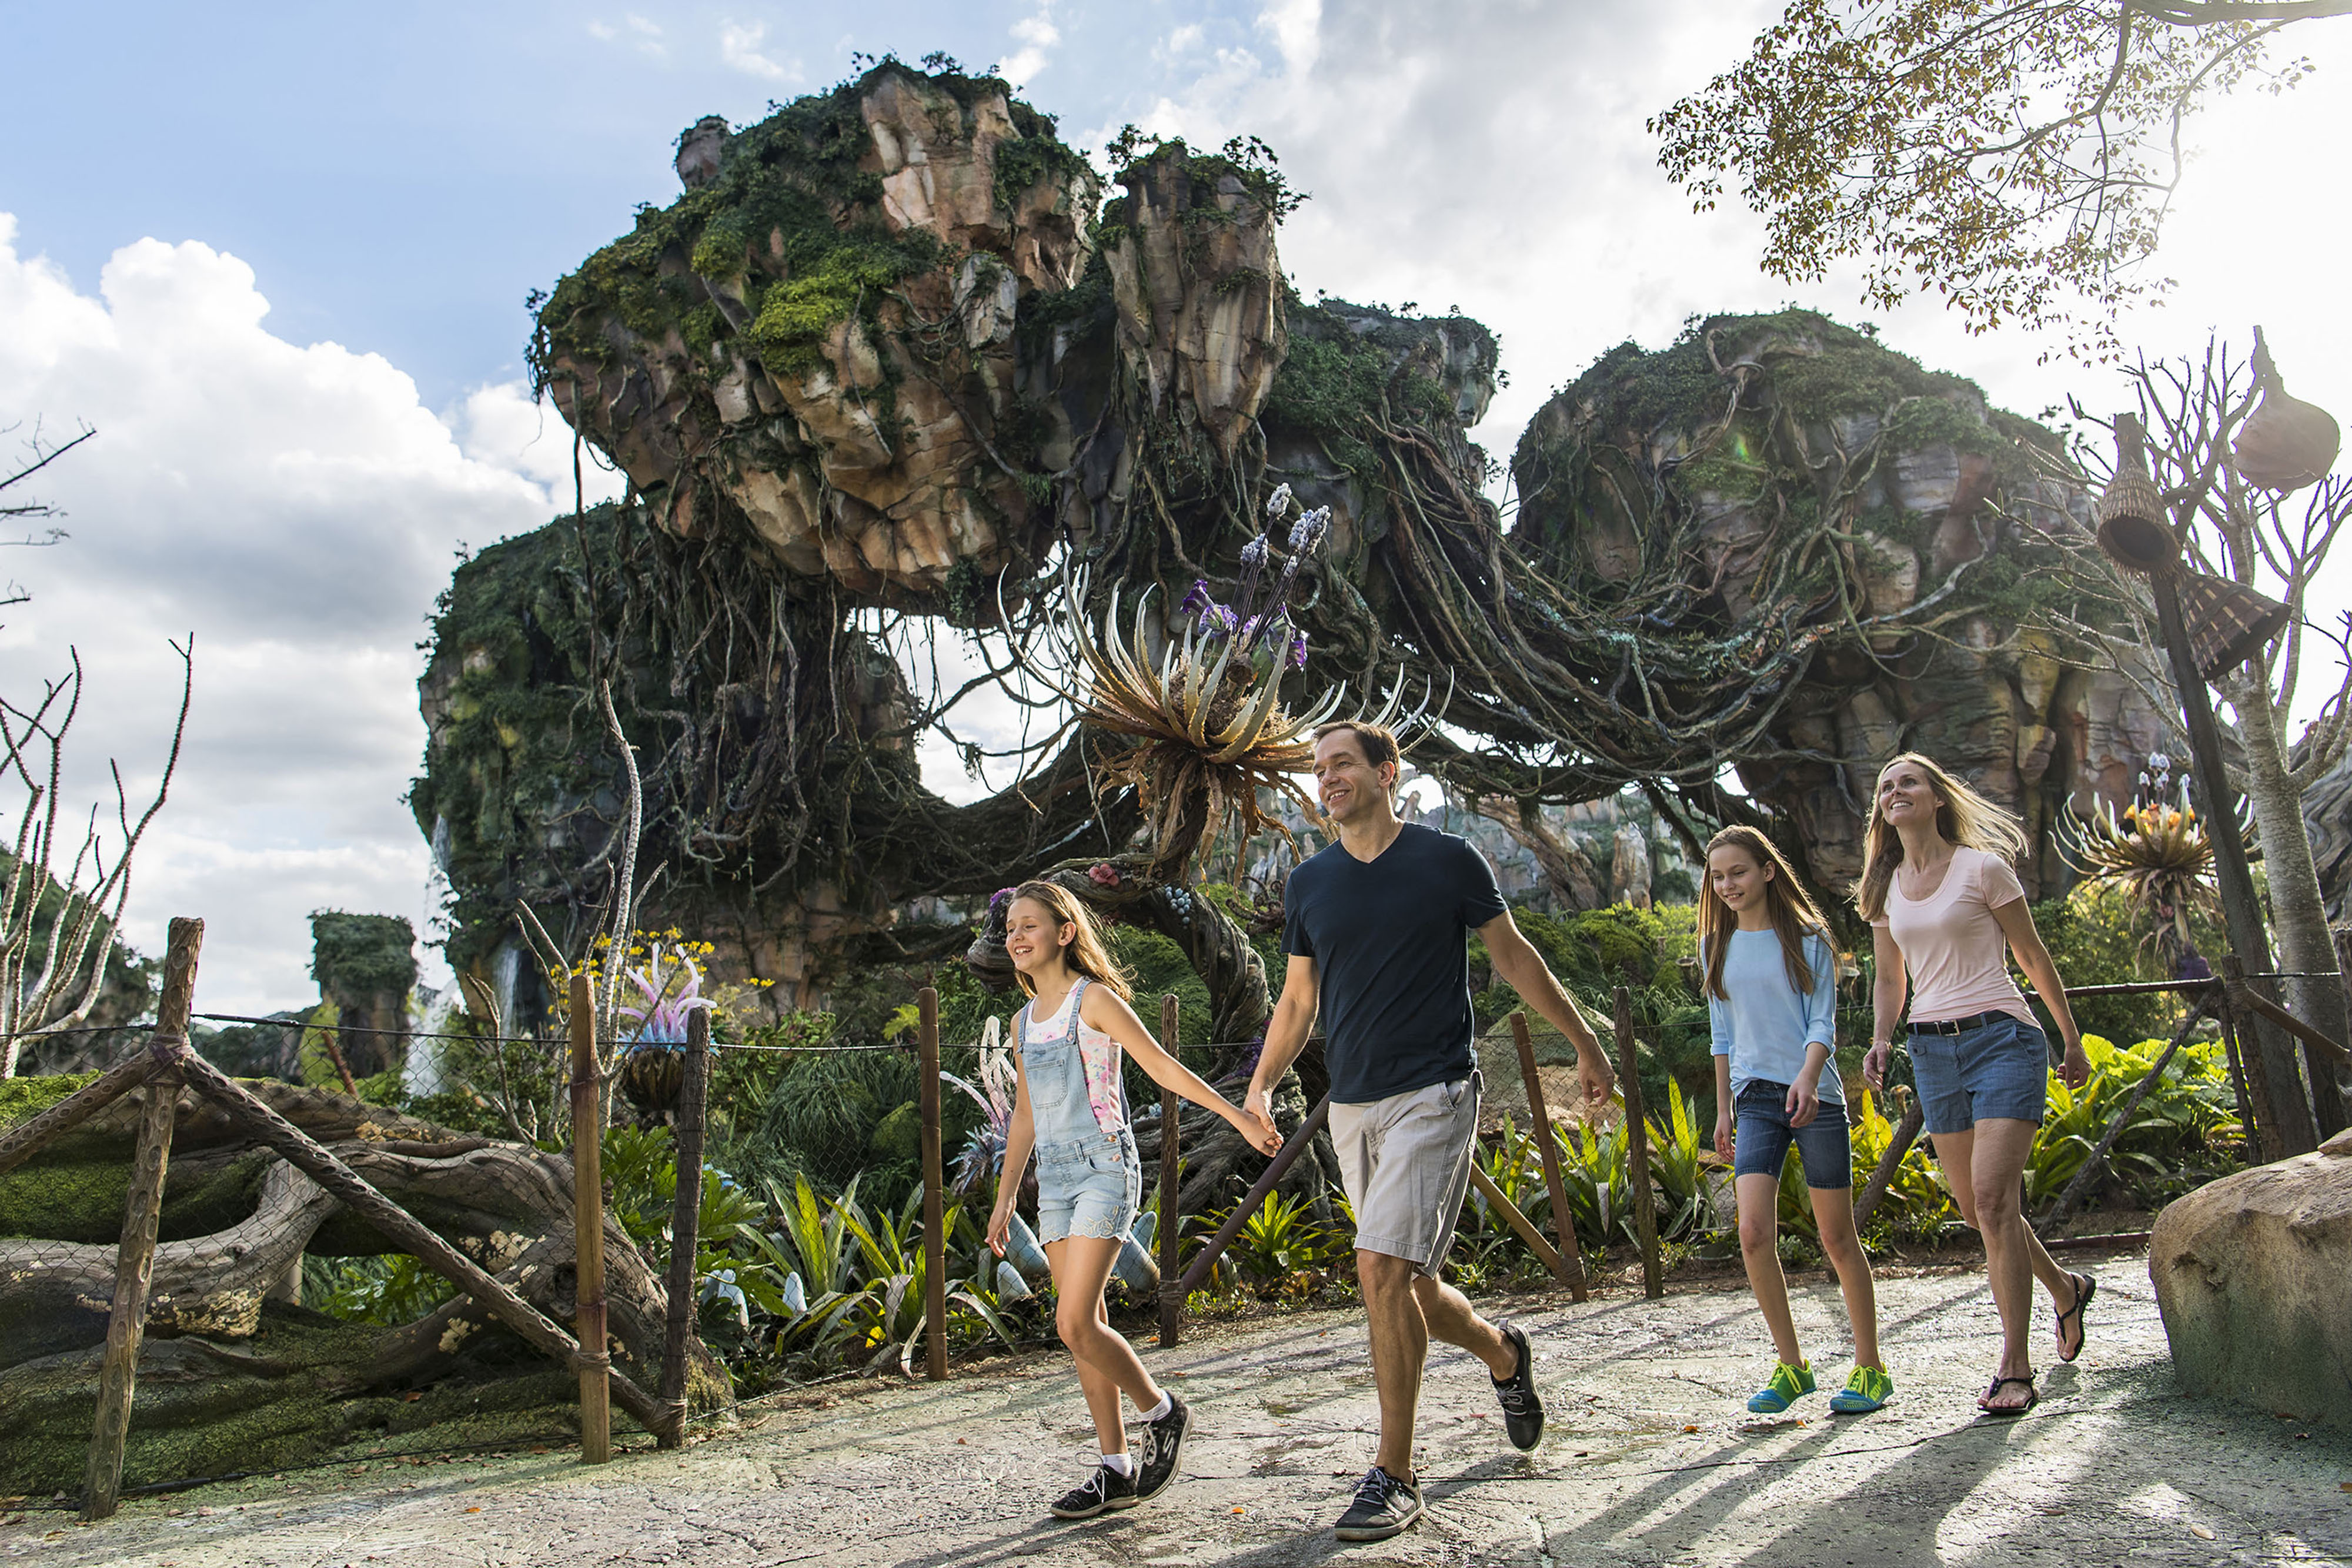 Behind the scenes at Universal Orlando's newest park, Volcano Bay